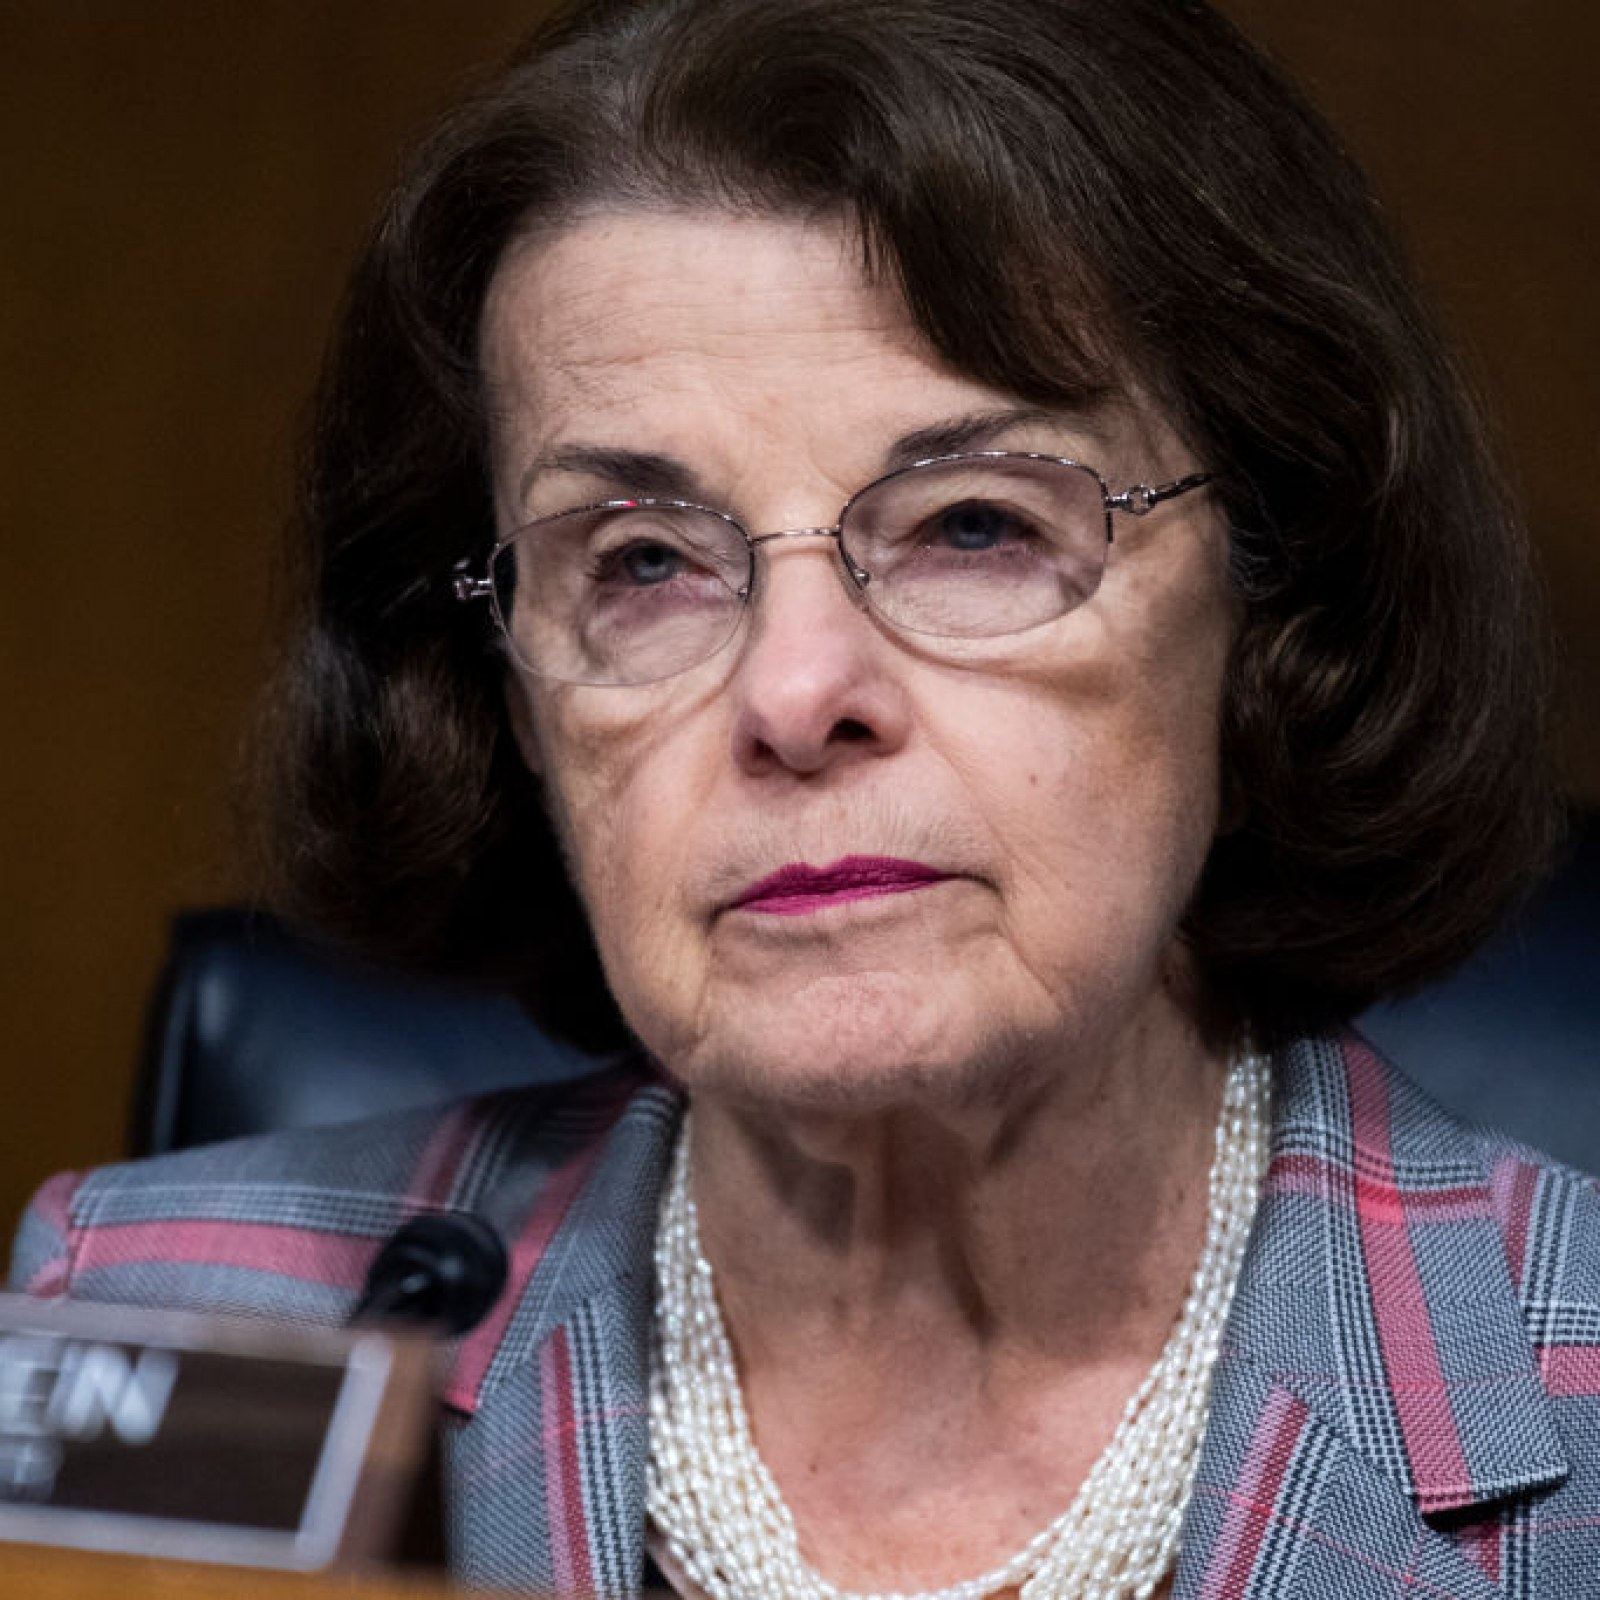 democrats furious as dianne feinstein demurs on packing supreme court democrats furious as dianne feinstein